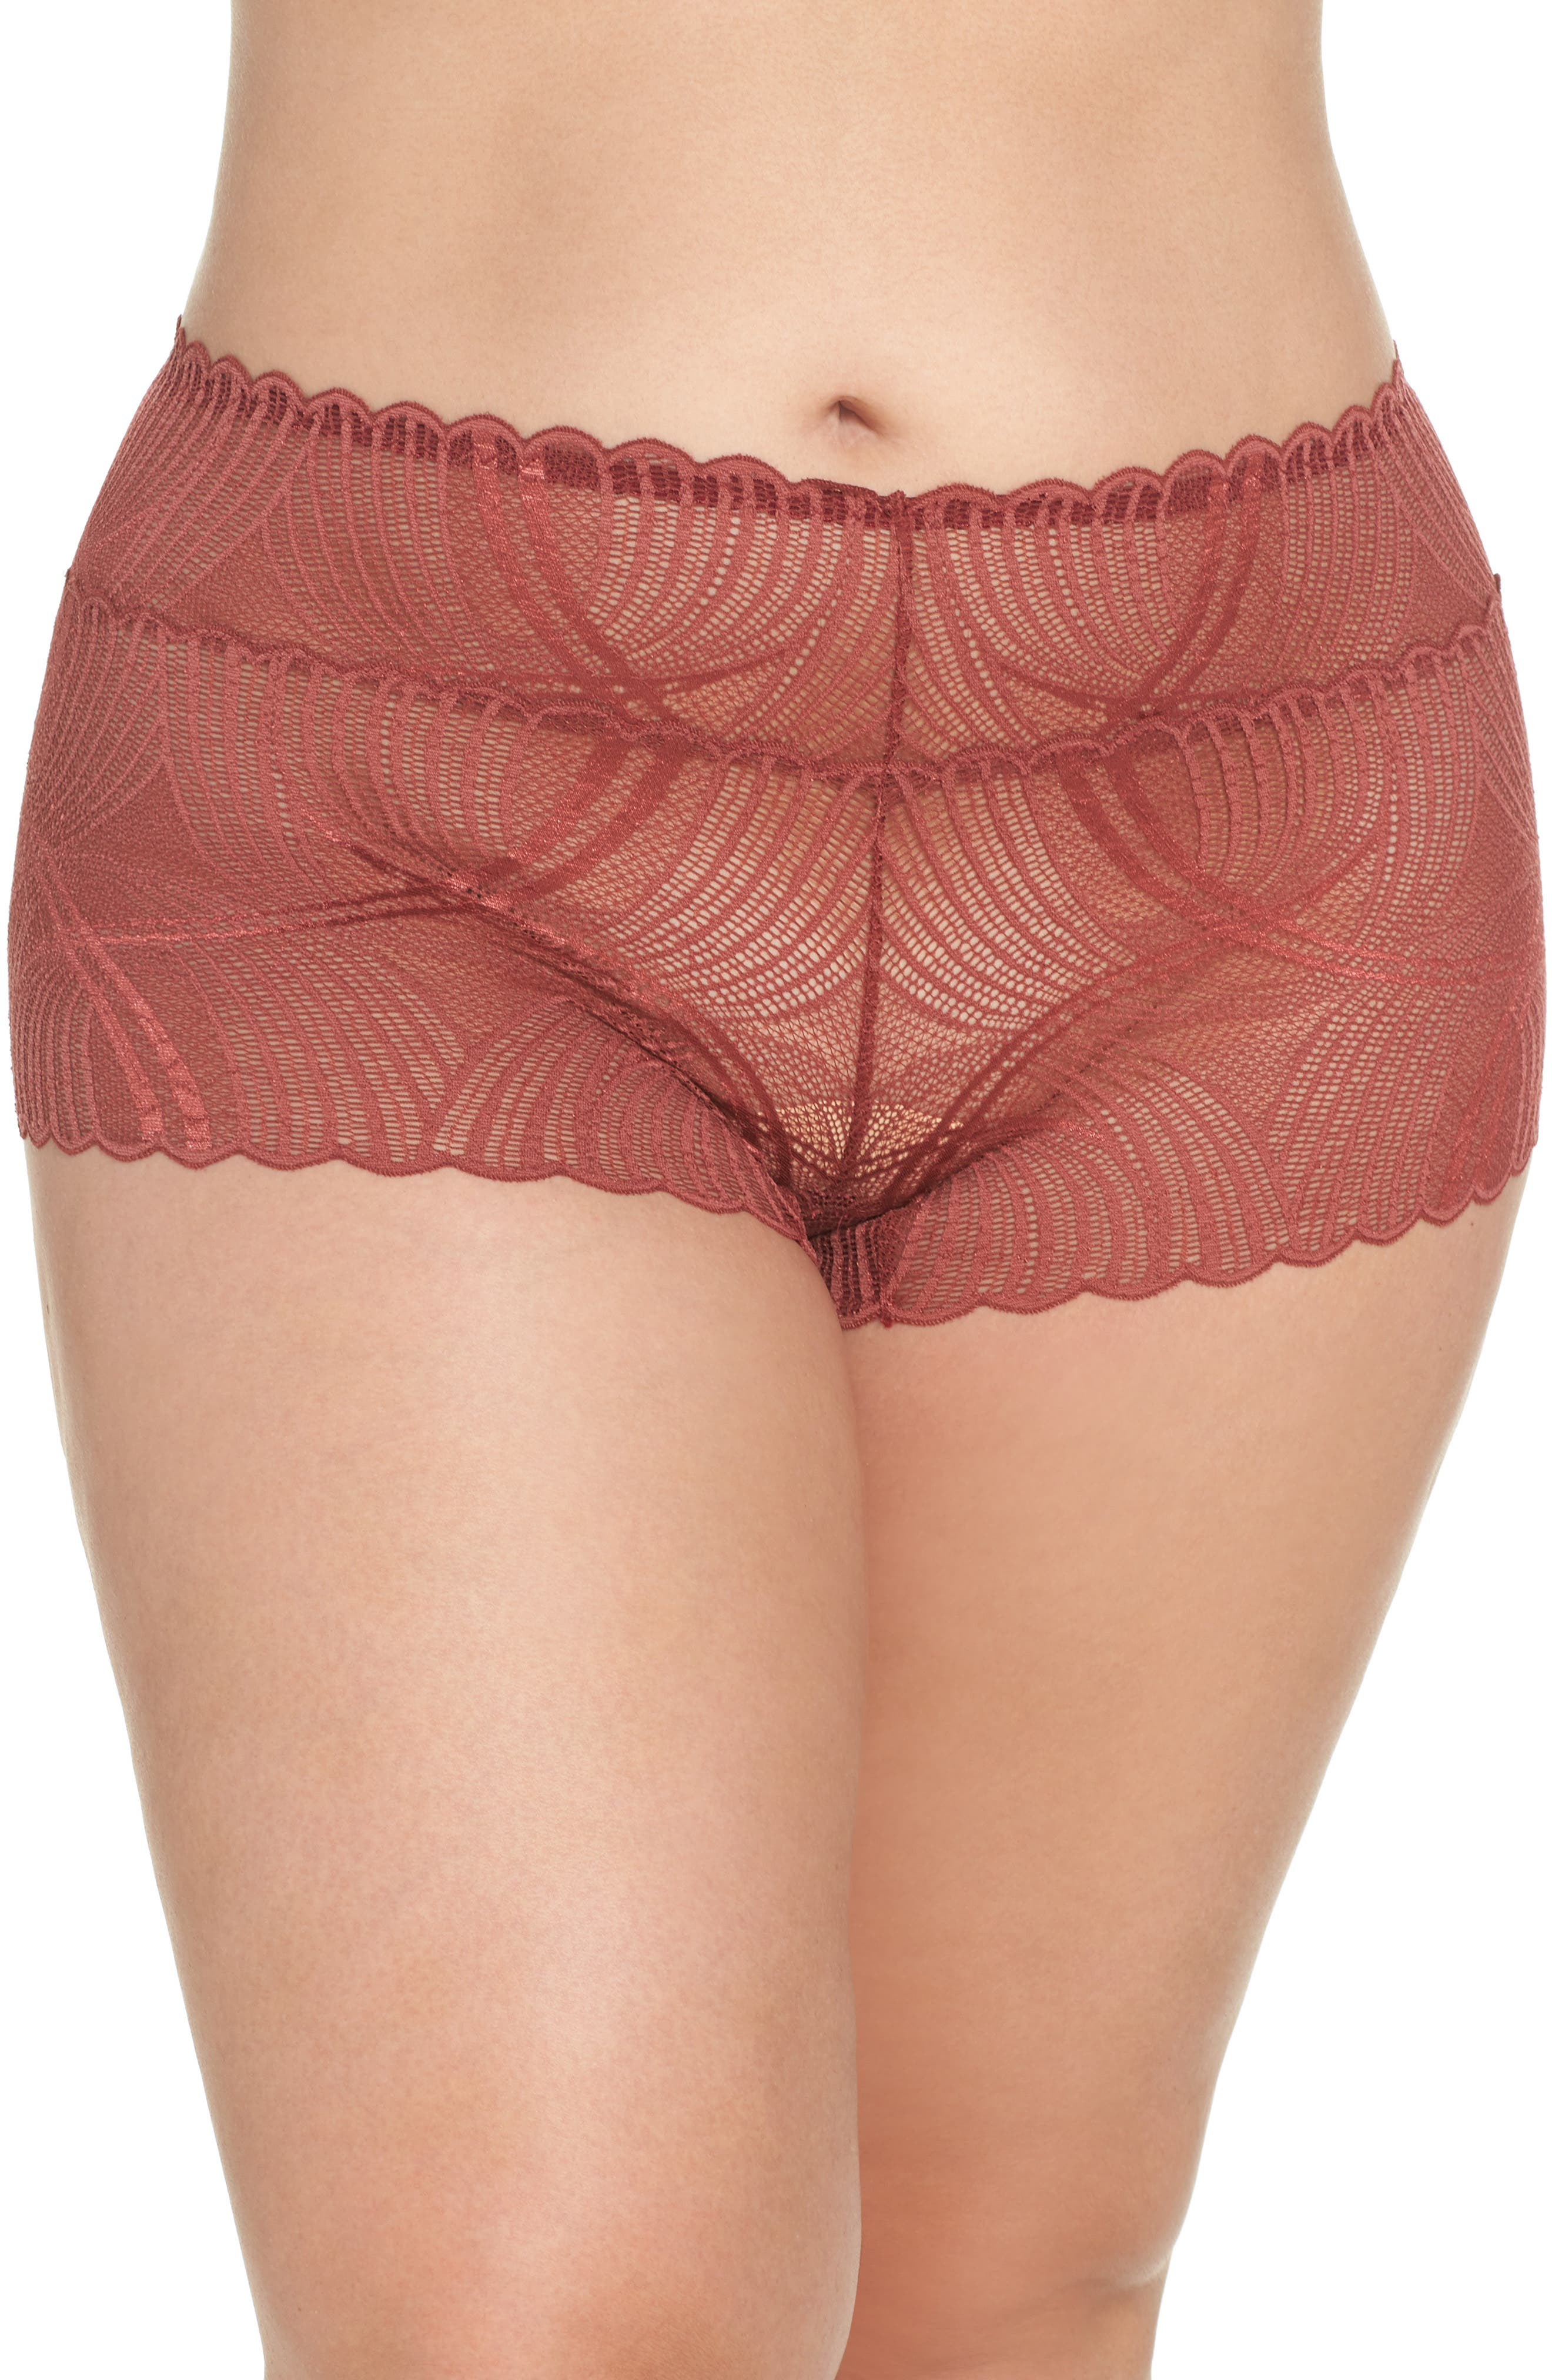 Minoa Naughtie Open Gusset Boyshorts,                             Main thumbnail 2, color,